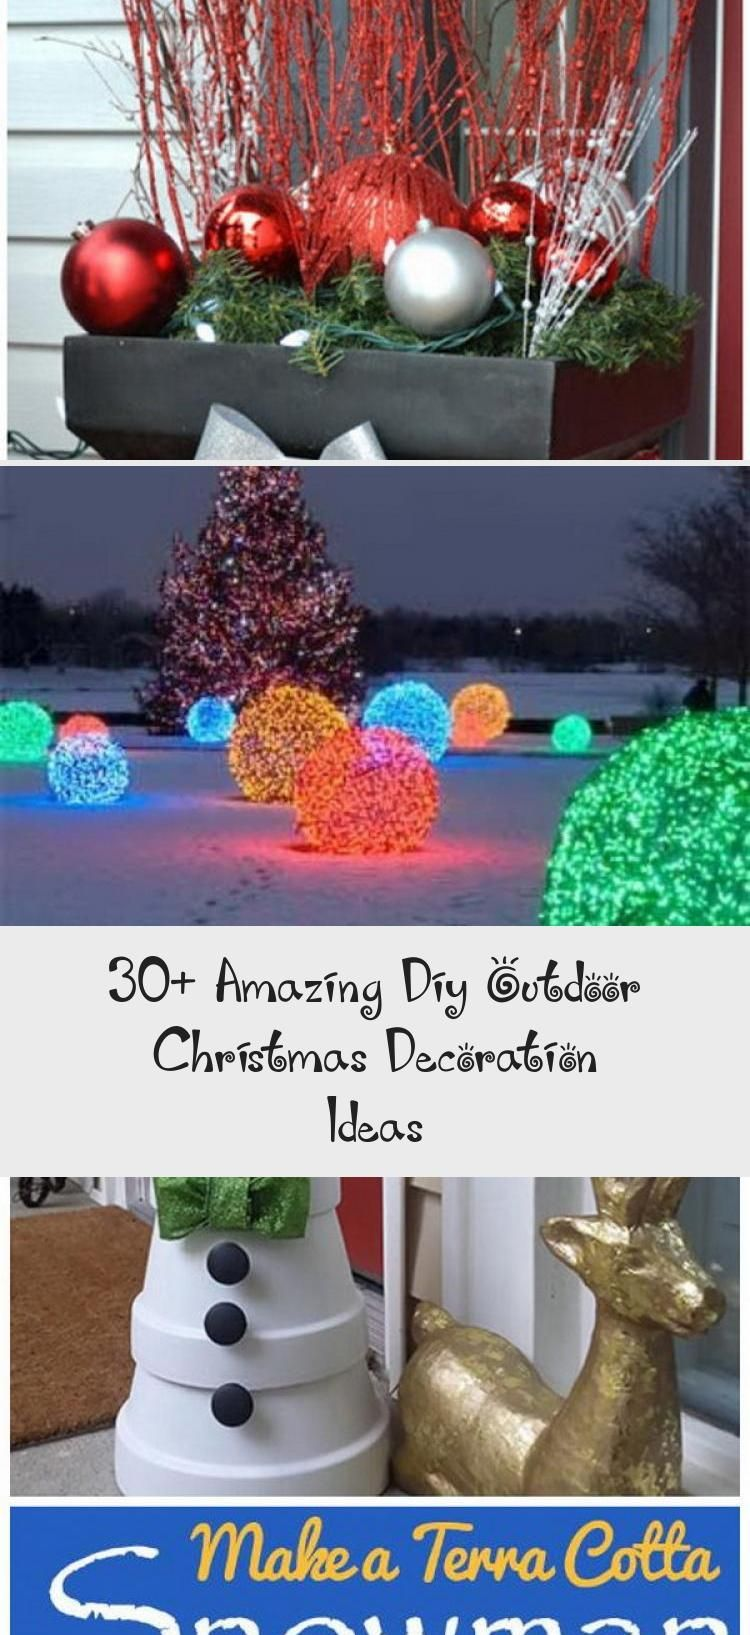 30 Amazing Diy Outdoor Christmas Decoration Ideas In 2020 Christmas Decorations Diy Outdoor Outdoor Christmas Outdoor Christmas Decorations